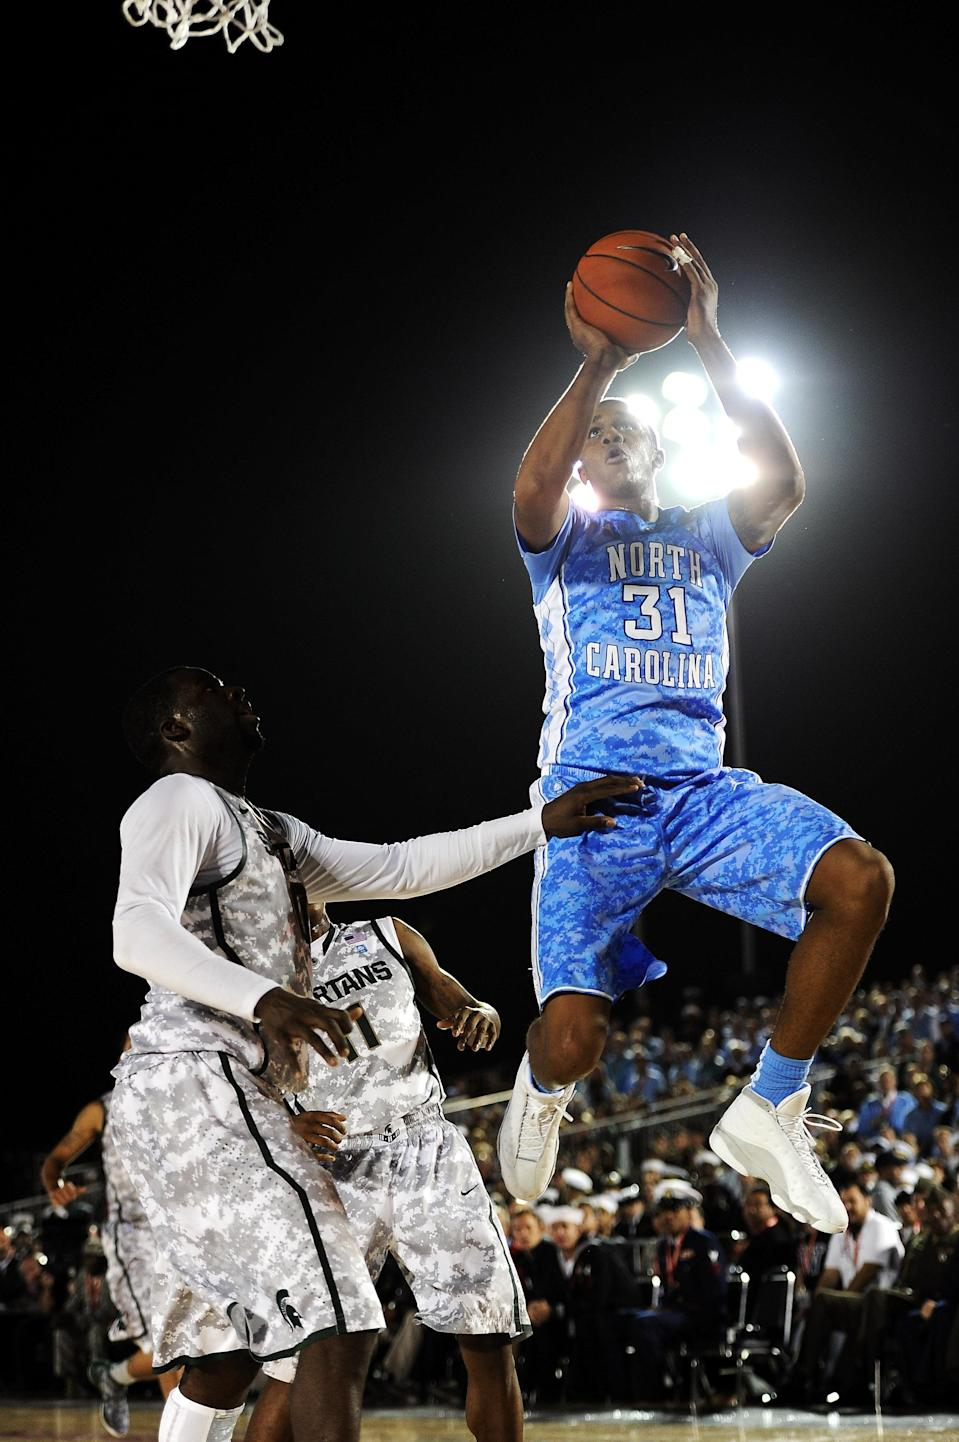 SAN DIEGO, CA - NOVEMBER 11: John Henson #31 of the North Carolina Tar Heels makes a move to the basket against Draymond Green #10 of the Michigan State Spartans in the first half during the NCAA men's college basketball Carrier Classic aboard the flight deck of the USS Carl Vinson on November 11, 2011 in San Diego, California. (Photo by Harry How/Getty Images)